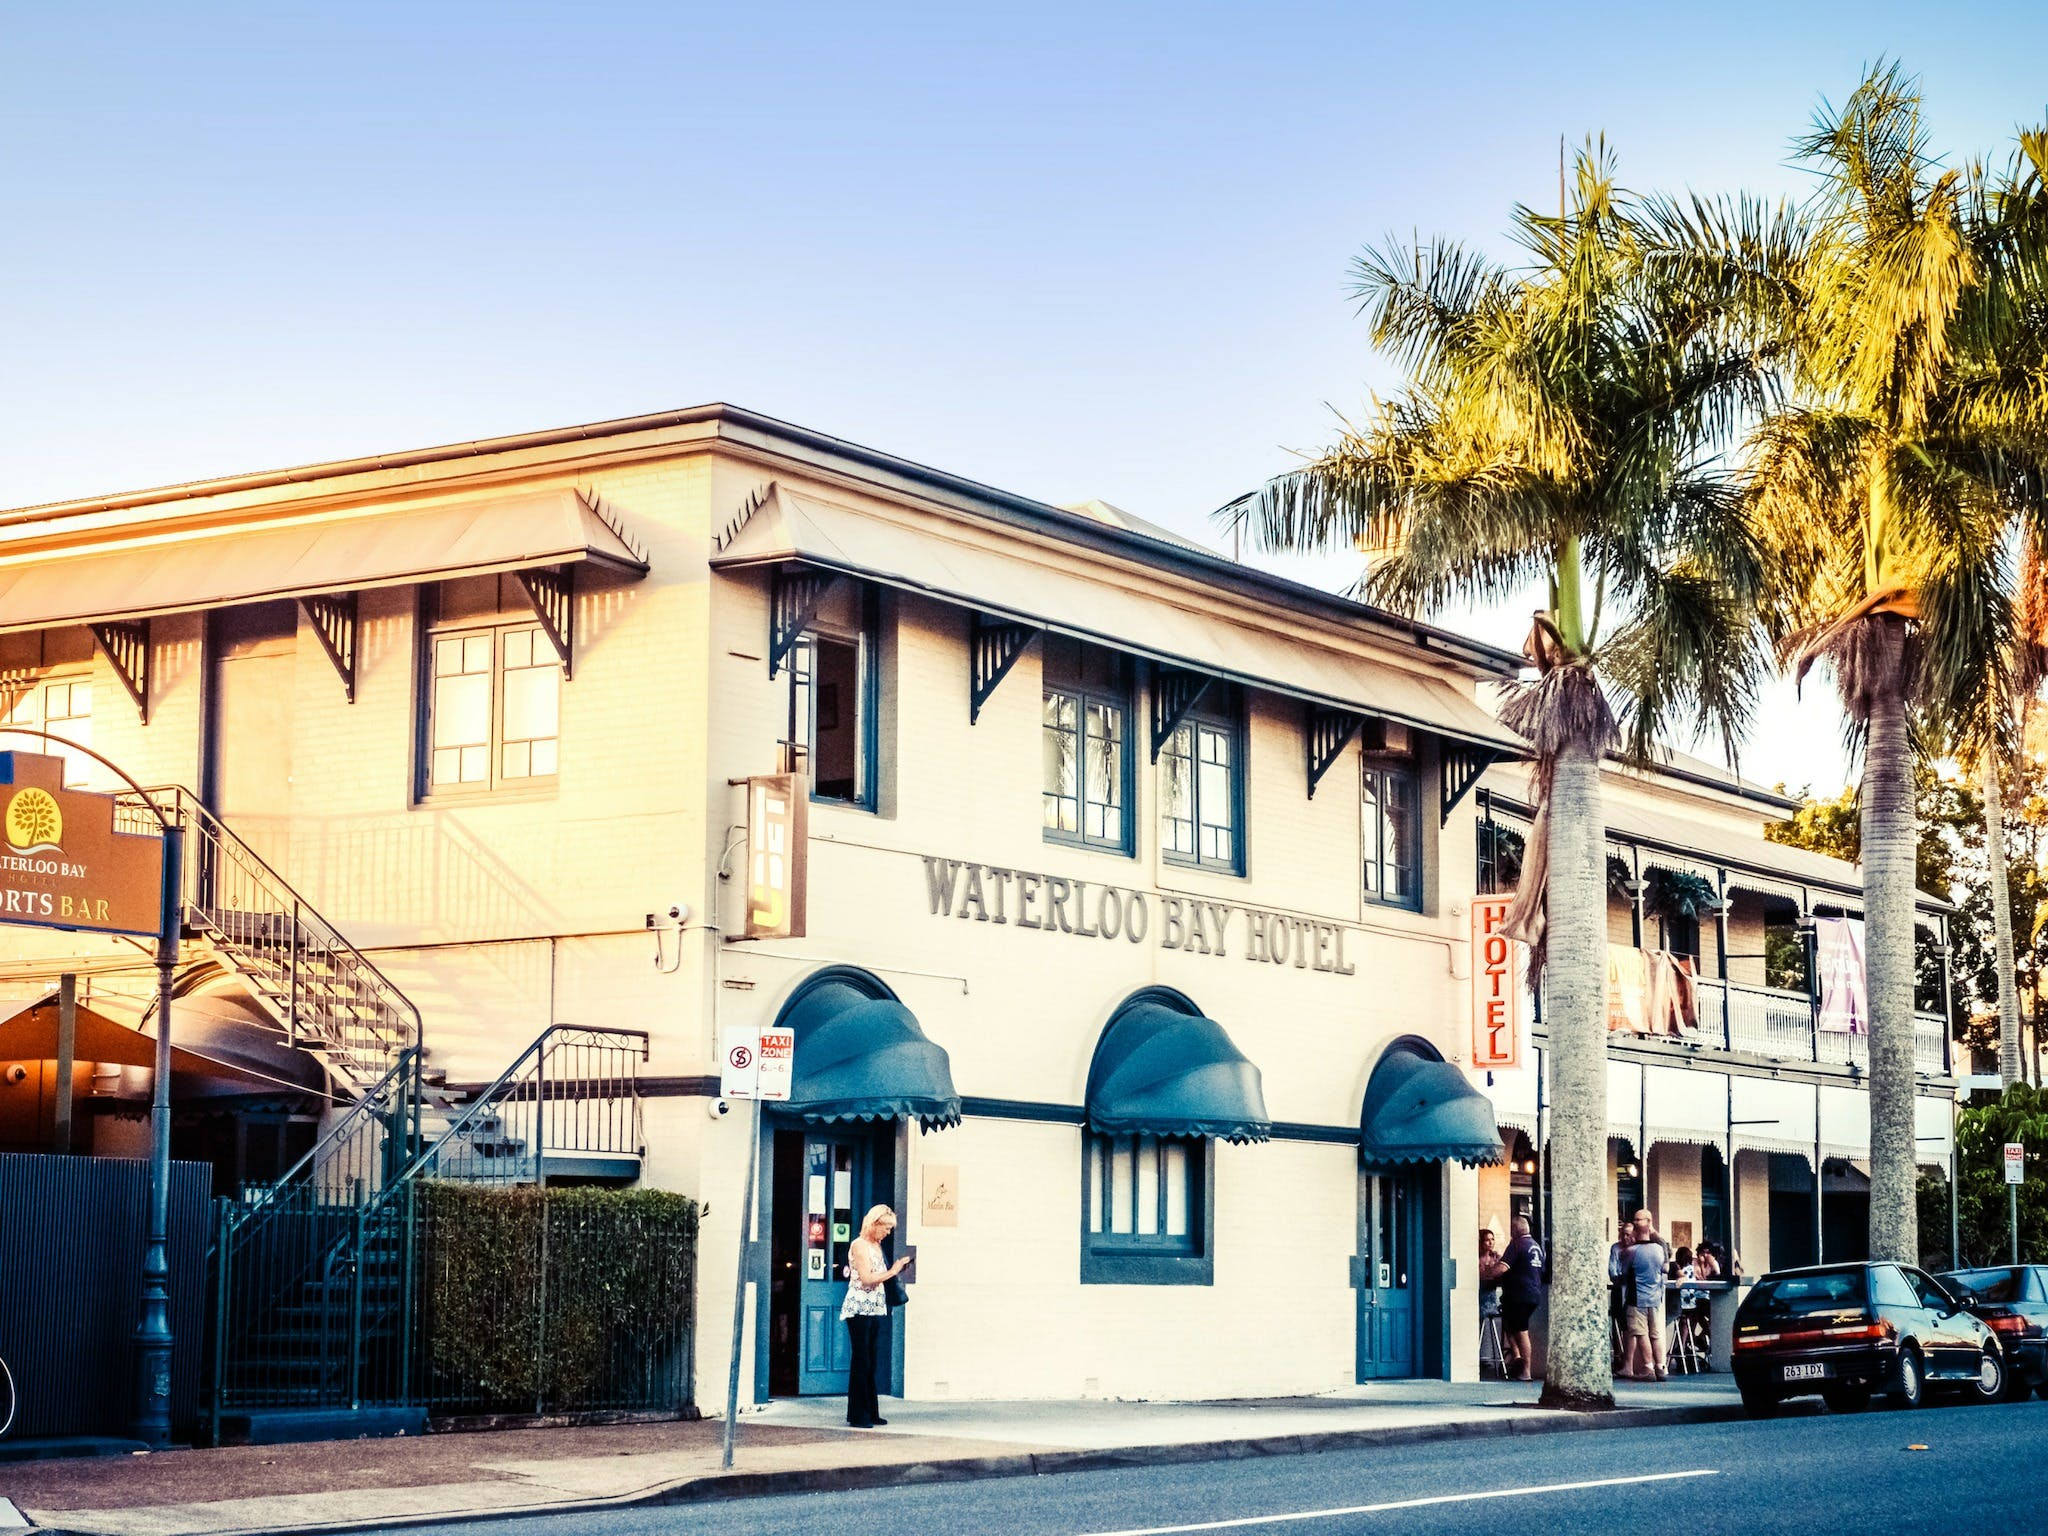 The Waterloo Bay Hotel - Townsville Tourism